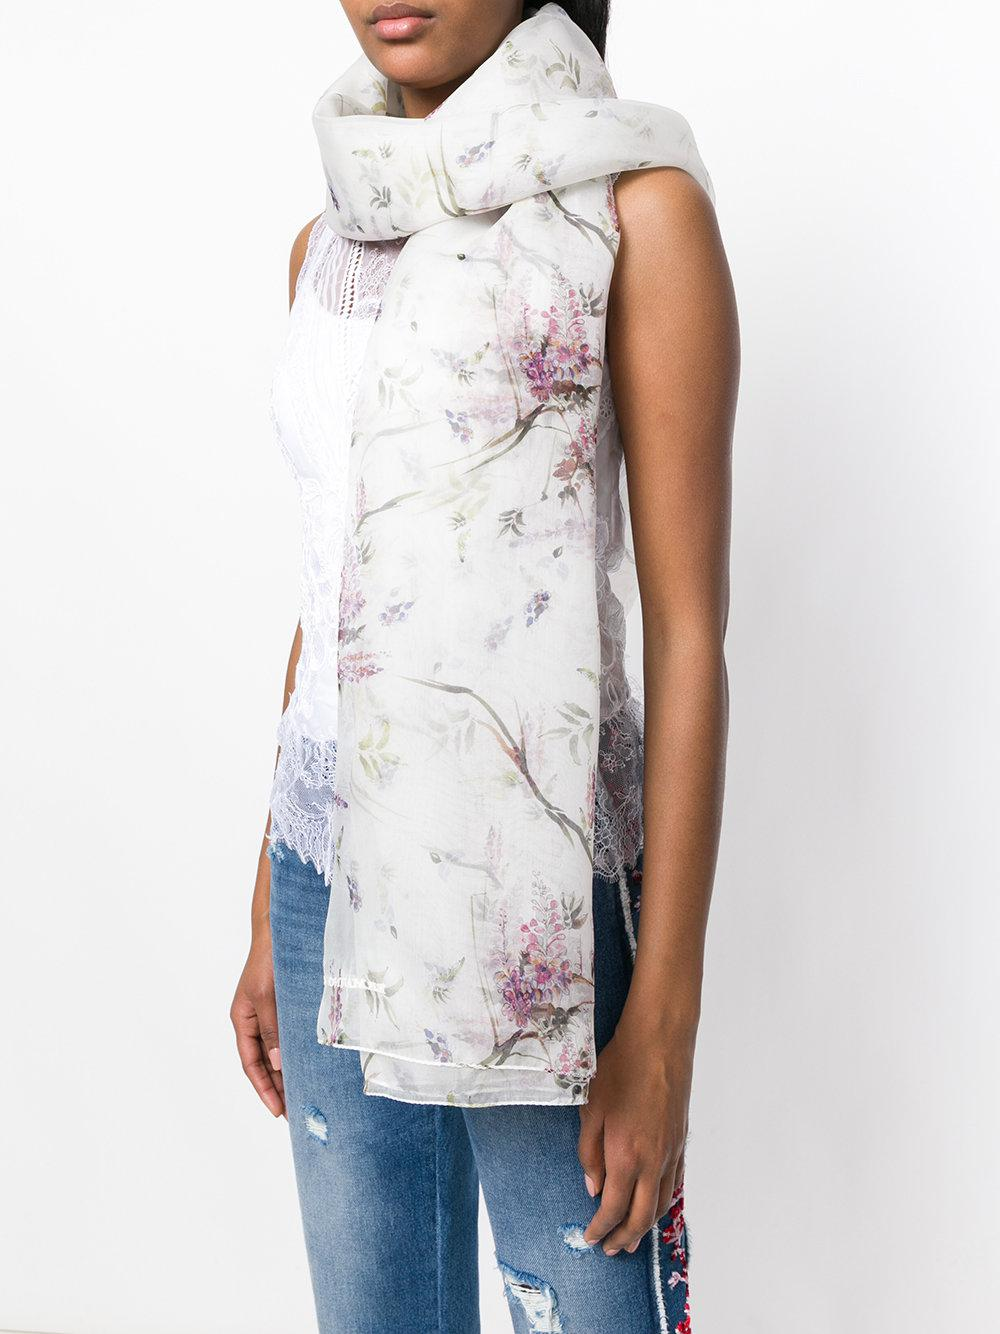 Outlet Supply Ermanno Scervino abstract floral print scarf Marketable For Sale Cheap Sale Wholesale Price Good Selling Sale Online Low Price Fee Shipping PcLqF2jf